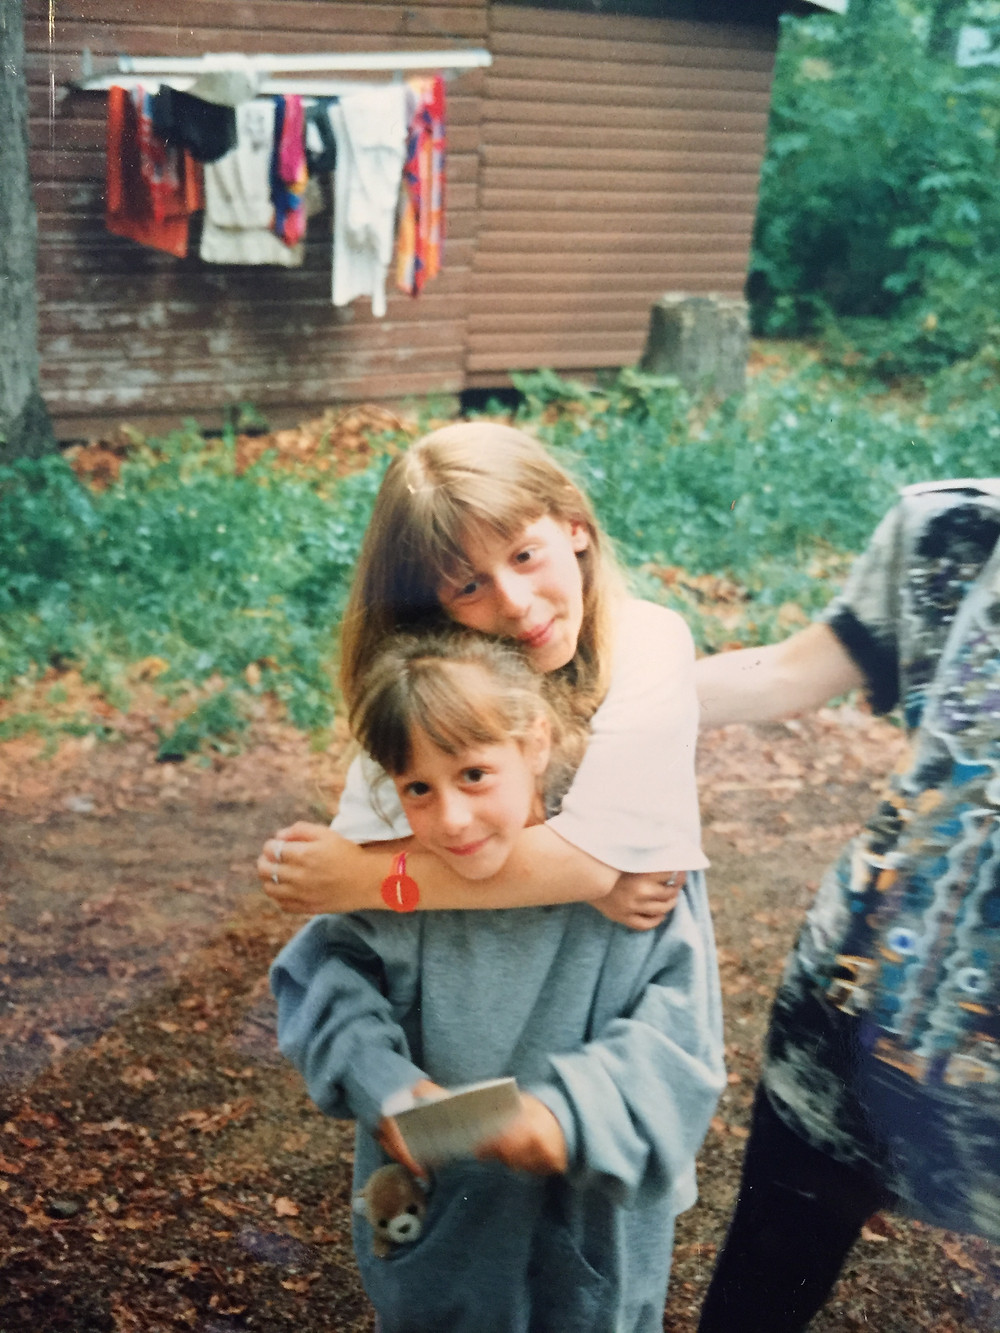 10 Signs You Went to Overnight Camp as a Kid